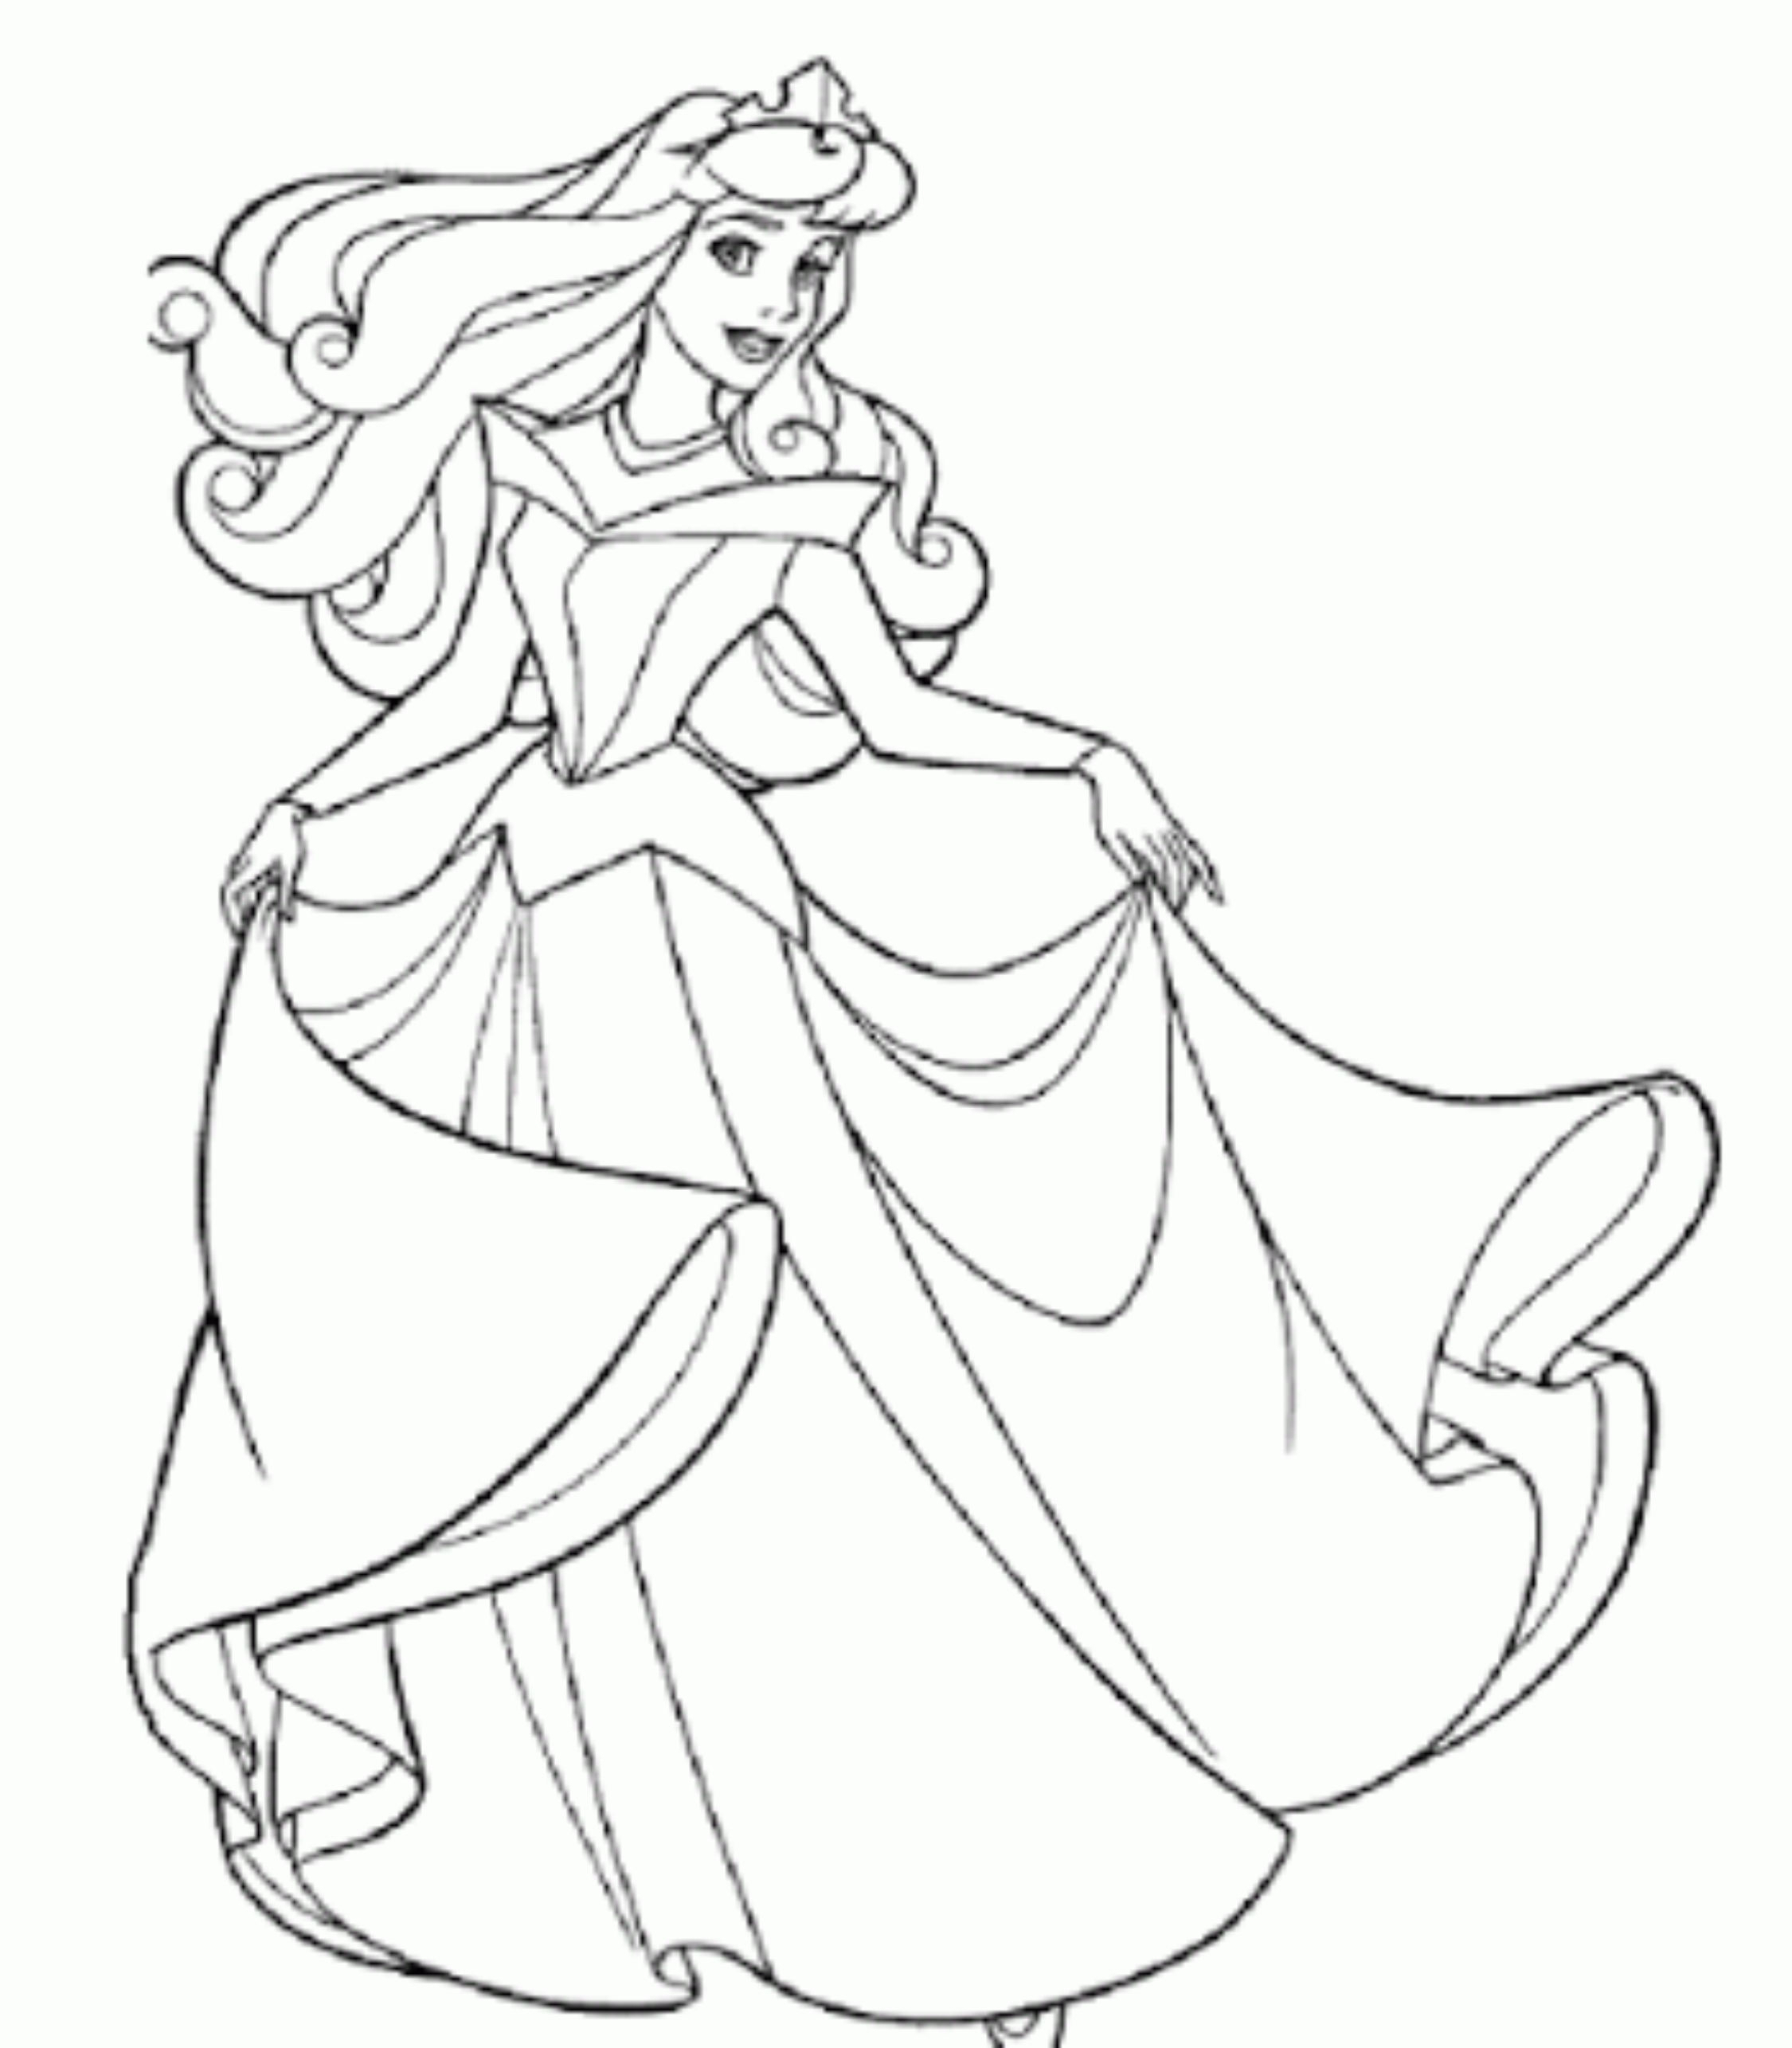 Doll pencil sketch pic. Barbie clipart easy